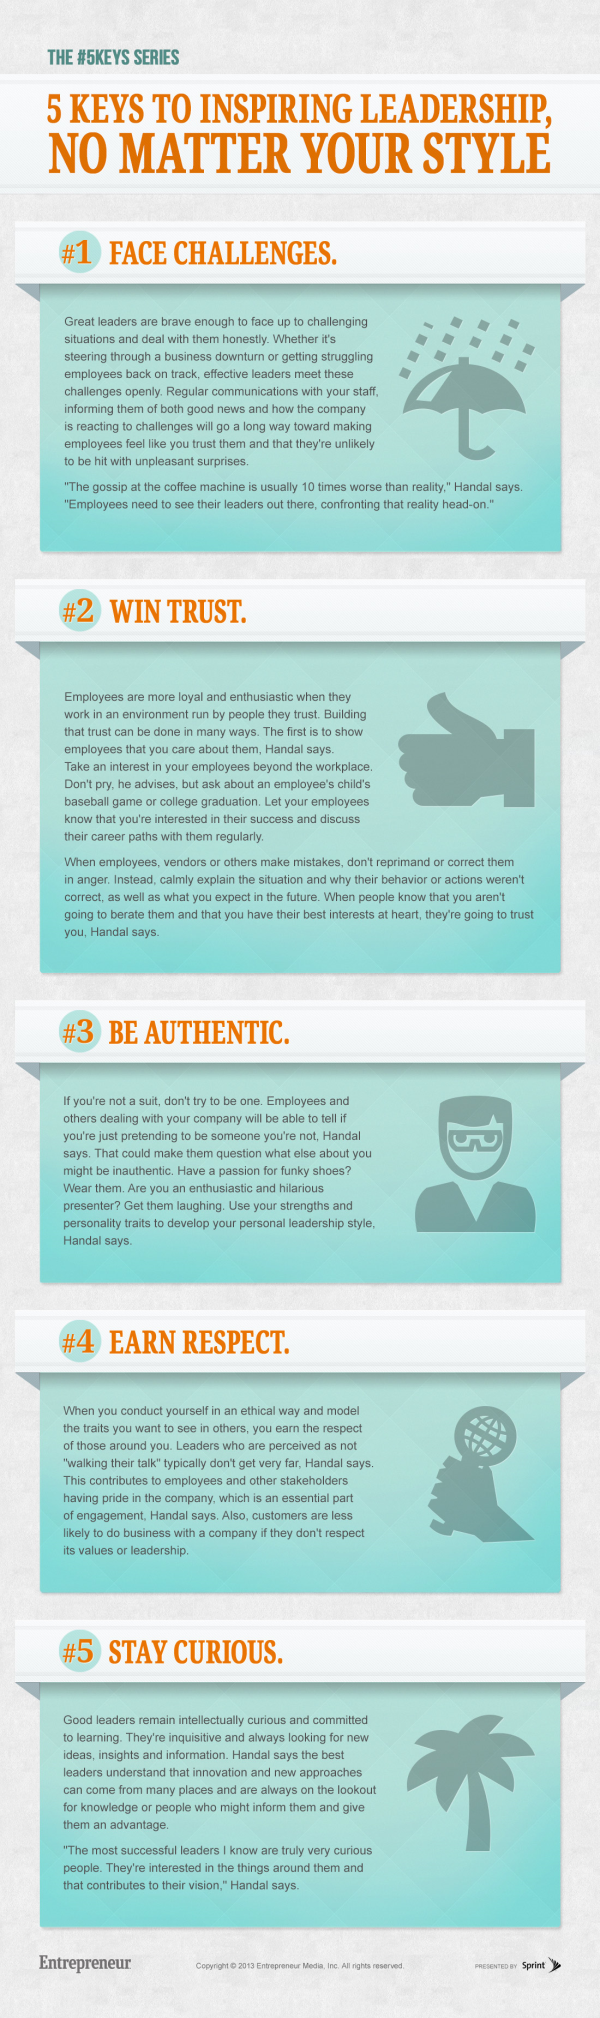 5-keys-infographic-inspiring-leadership-resized-600.jpg